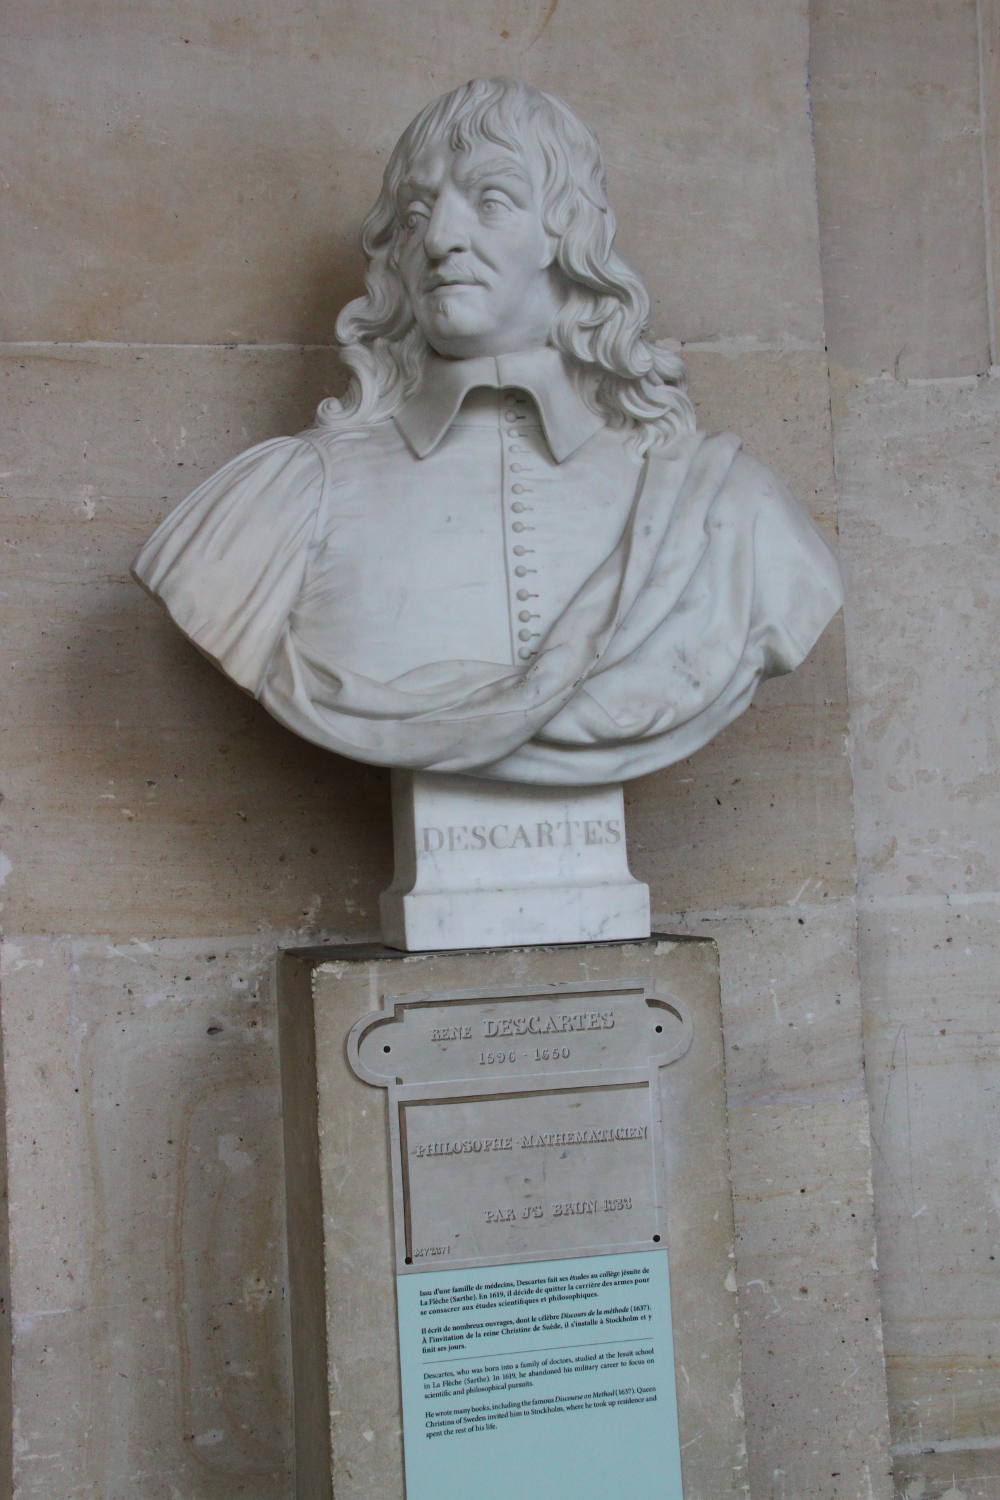 Palace of Versailles Descartes